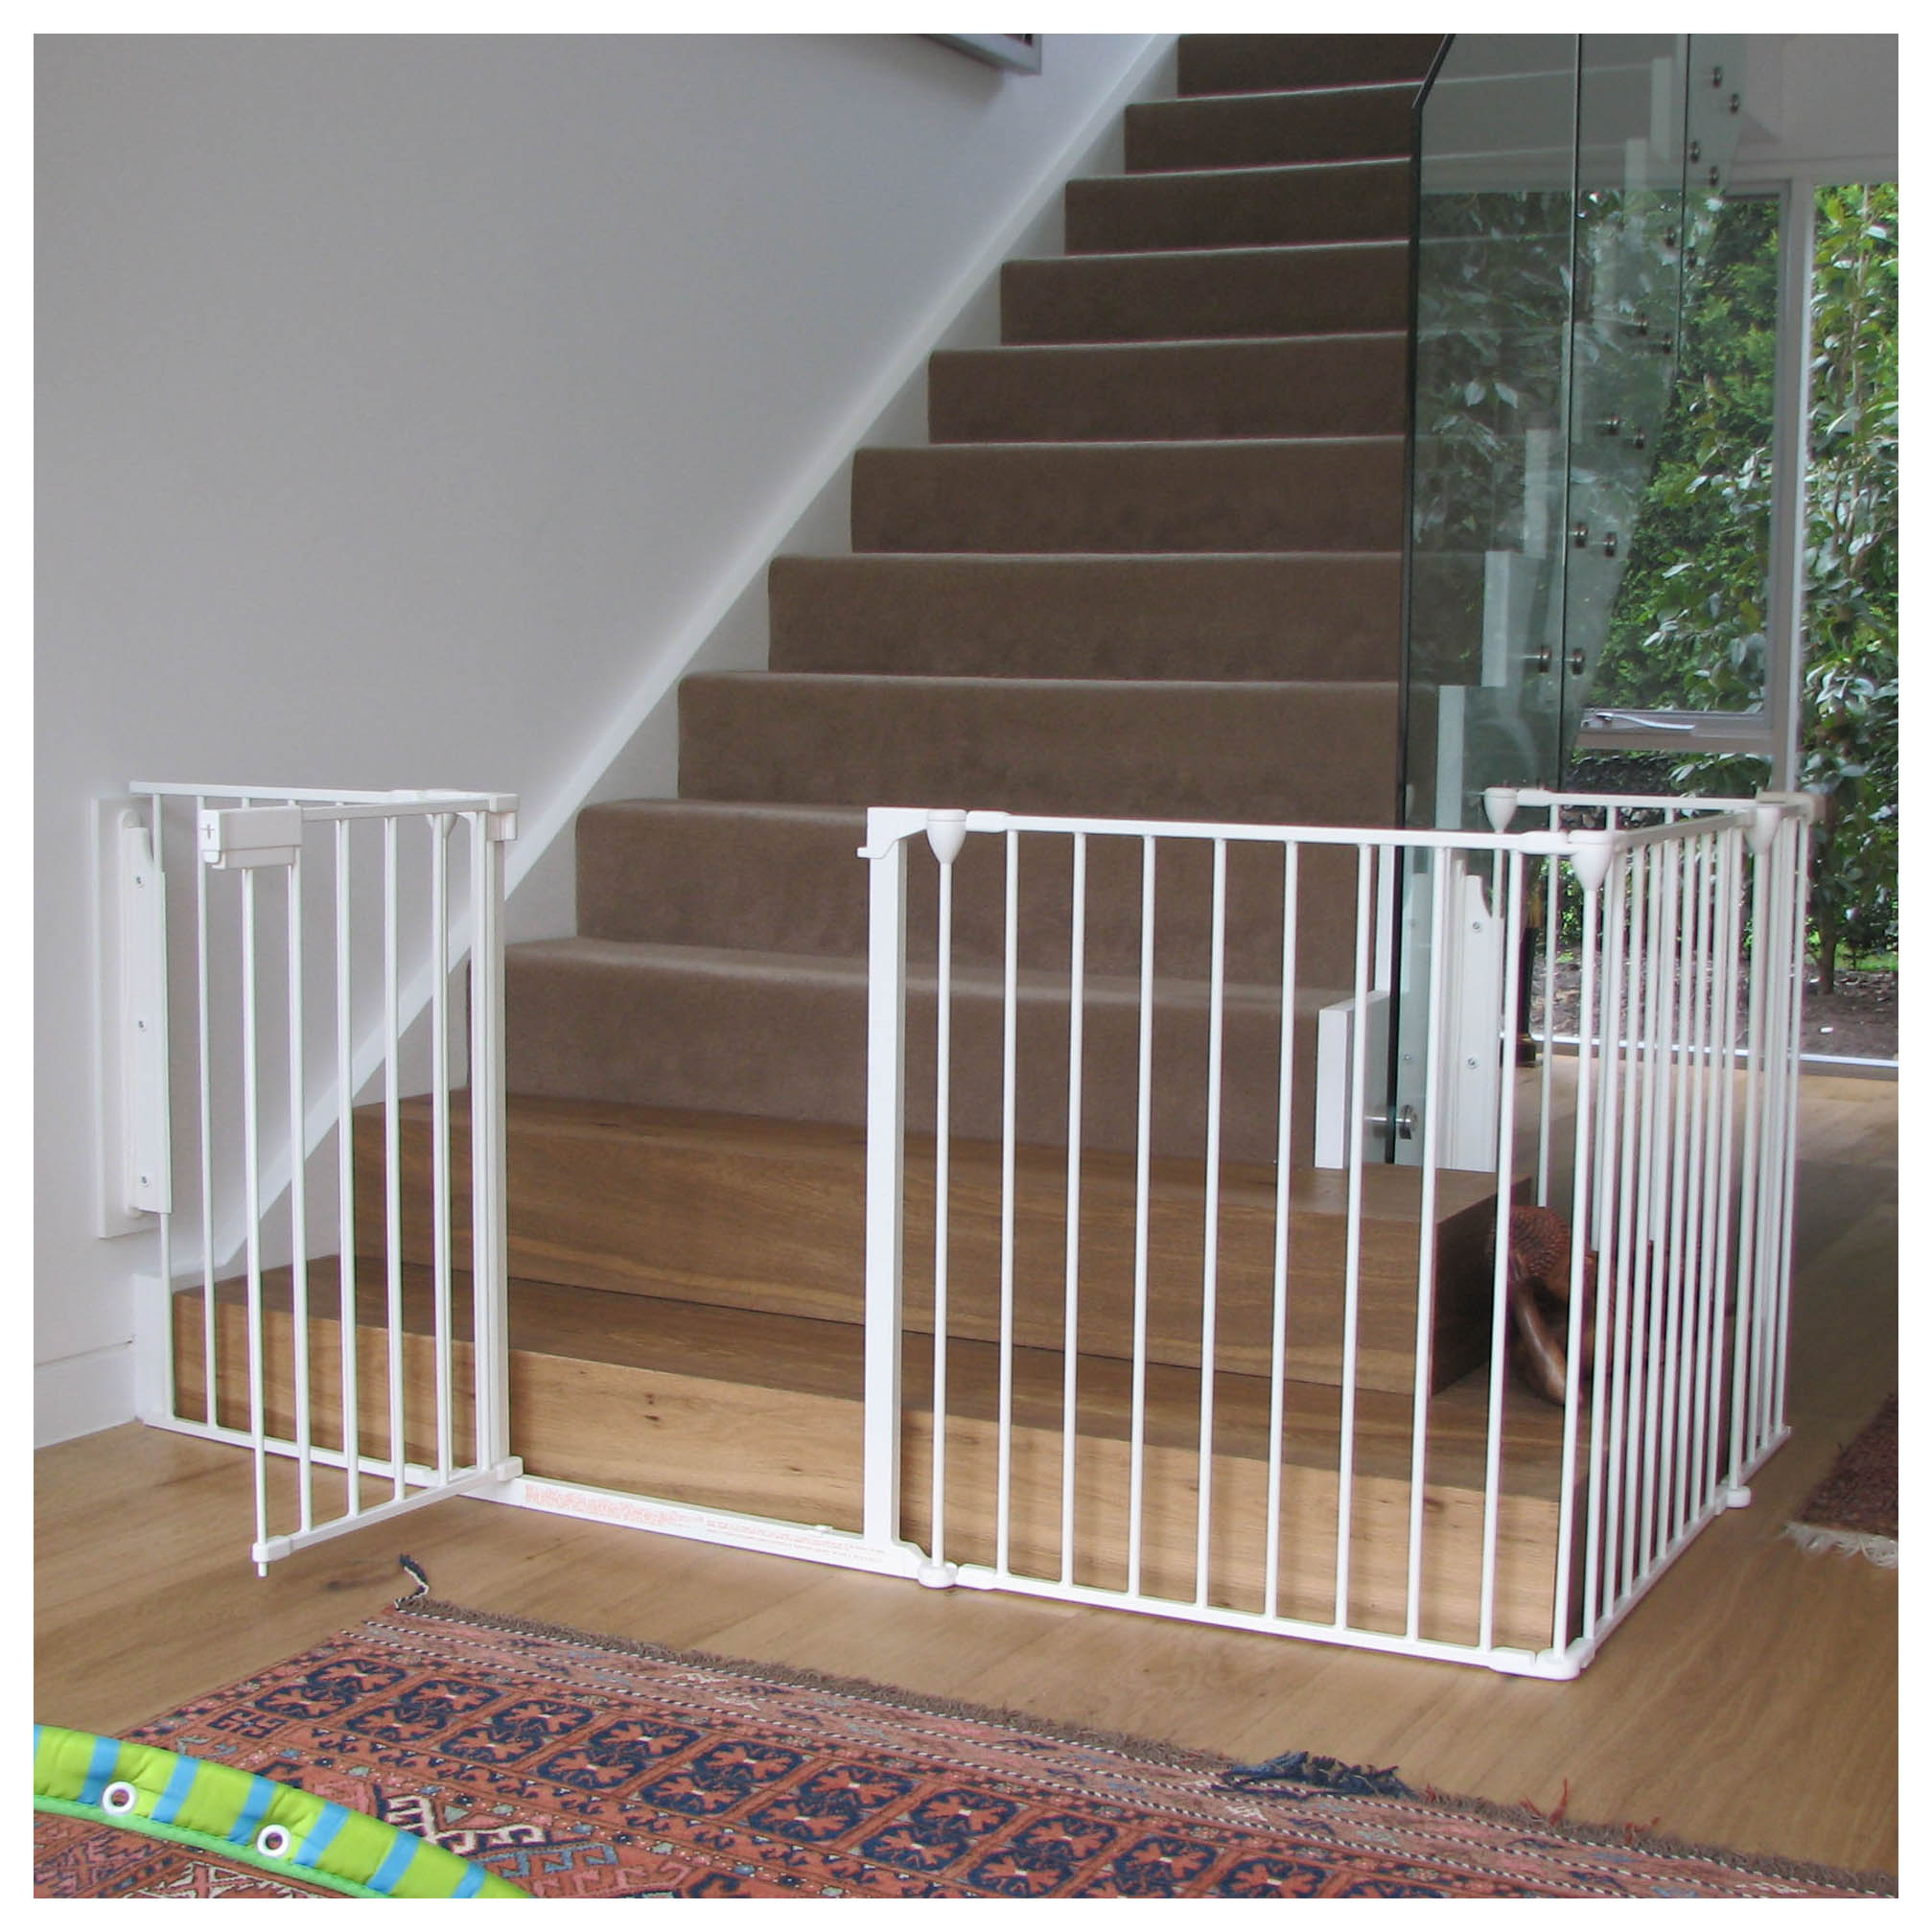 Good Child Safety Gates For Stairs